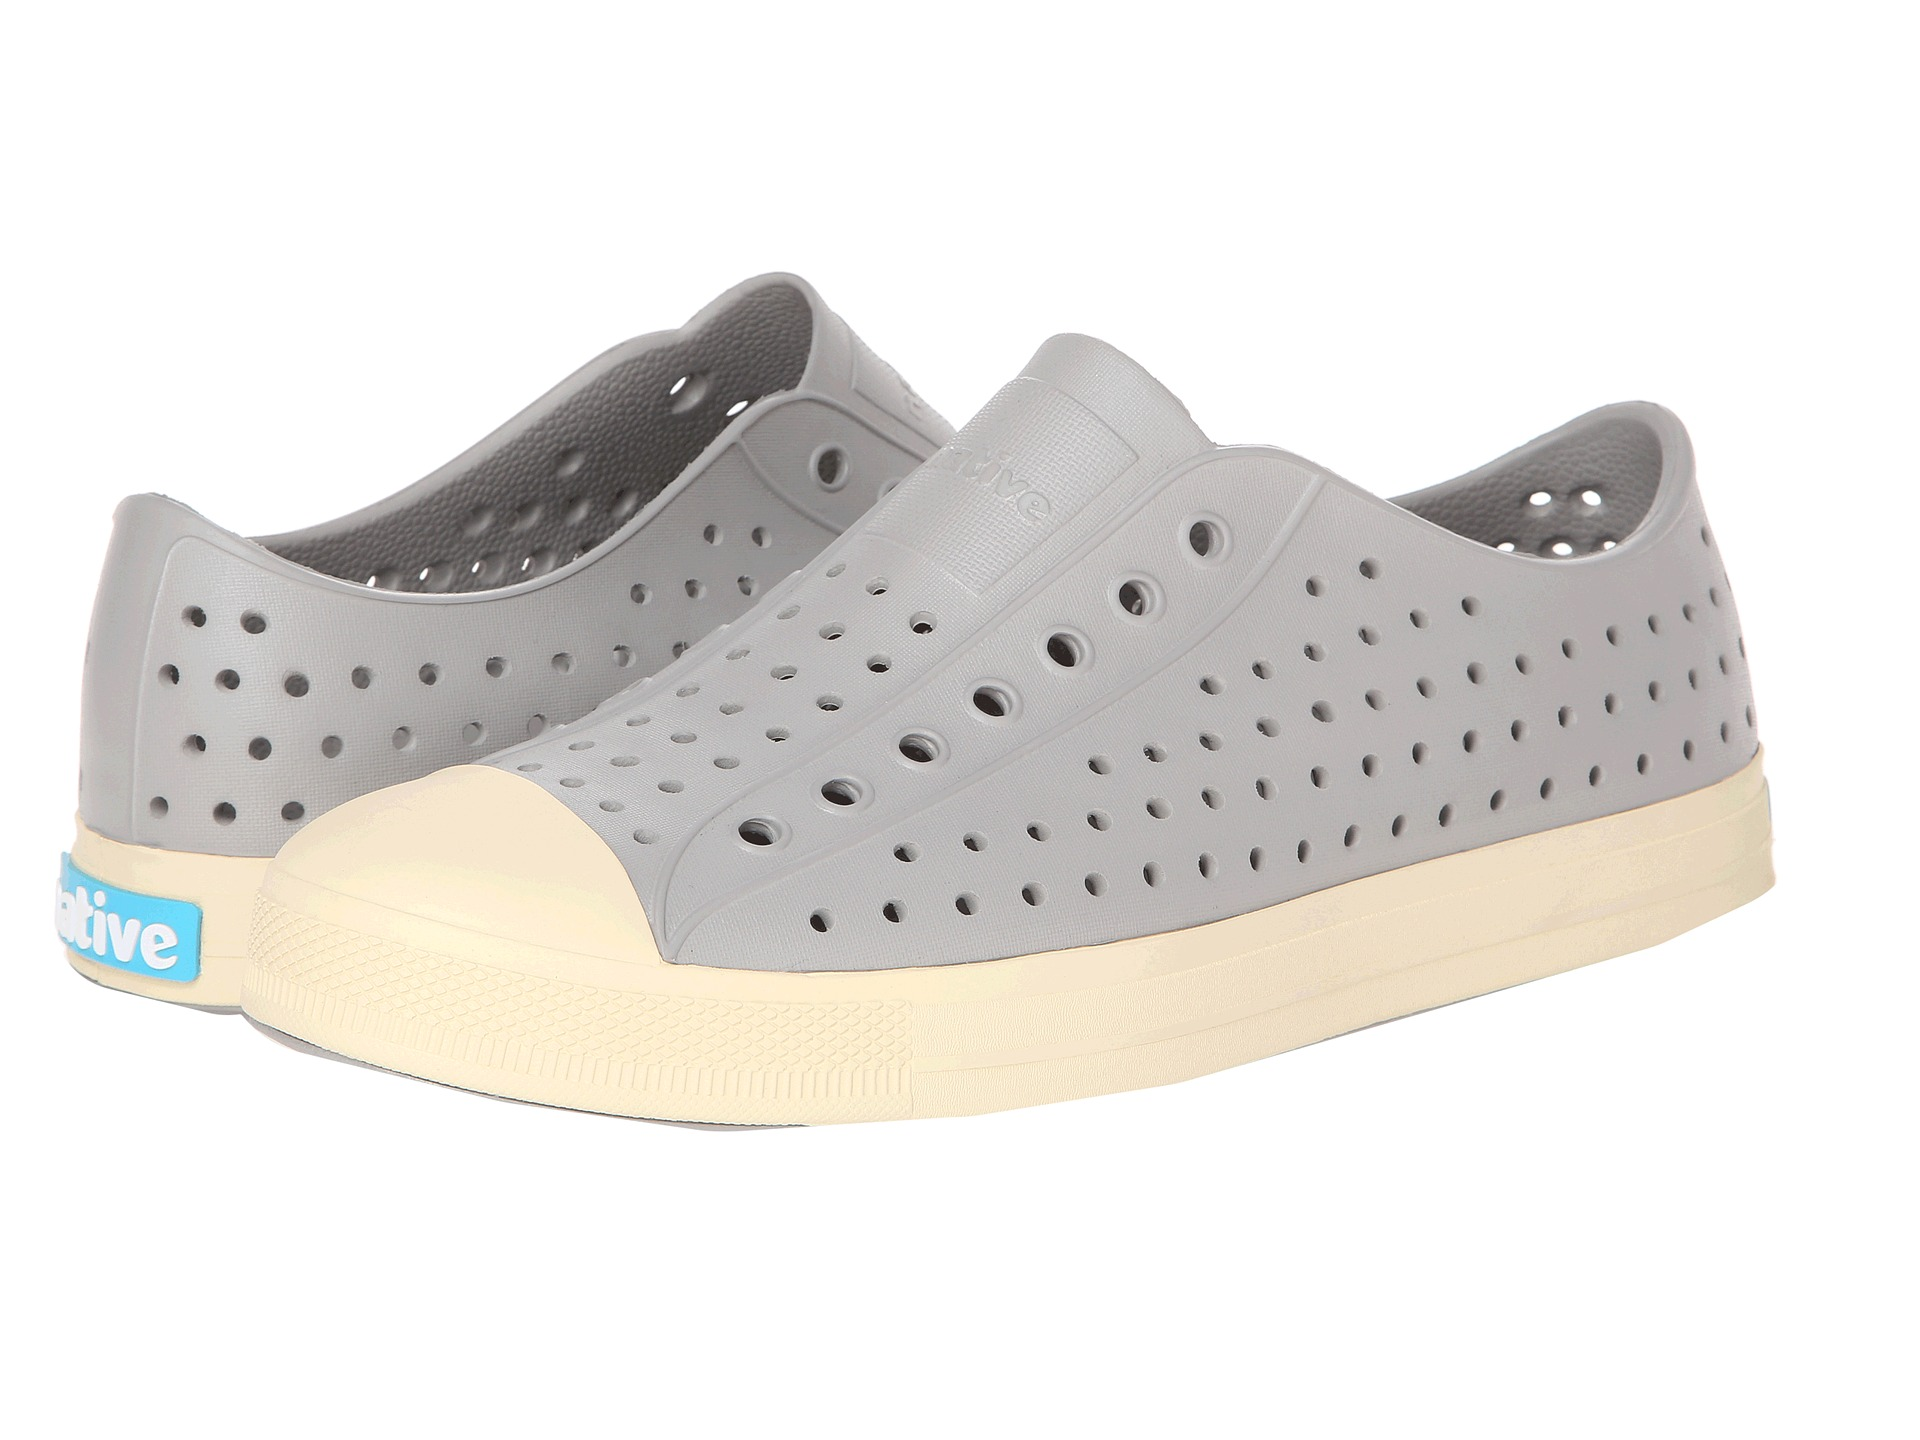 shoes jefferson zappos free shipping both ways